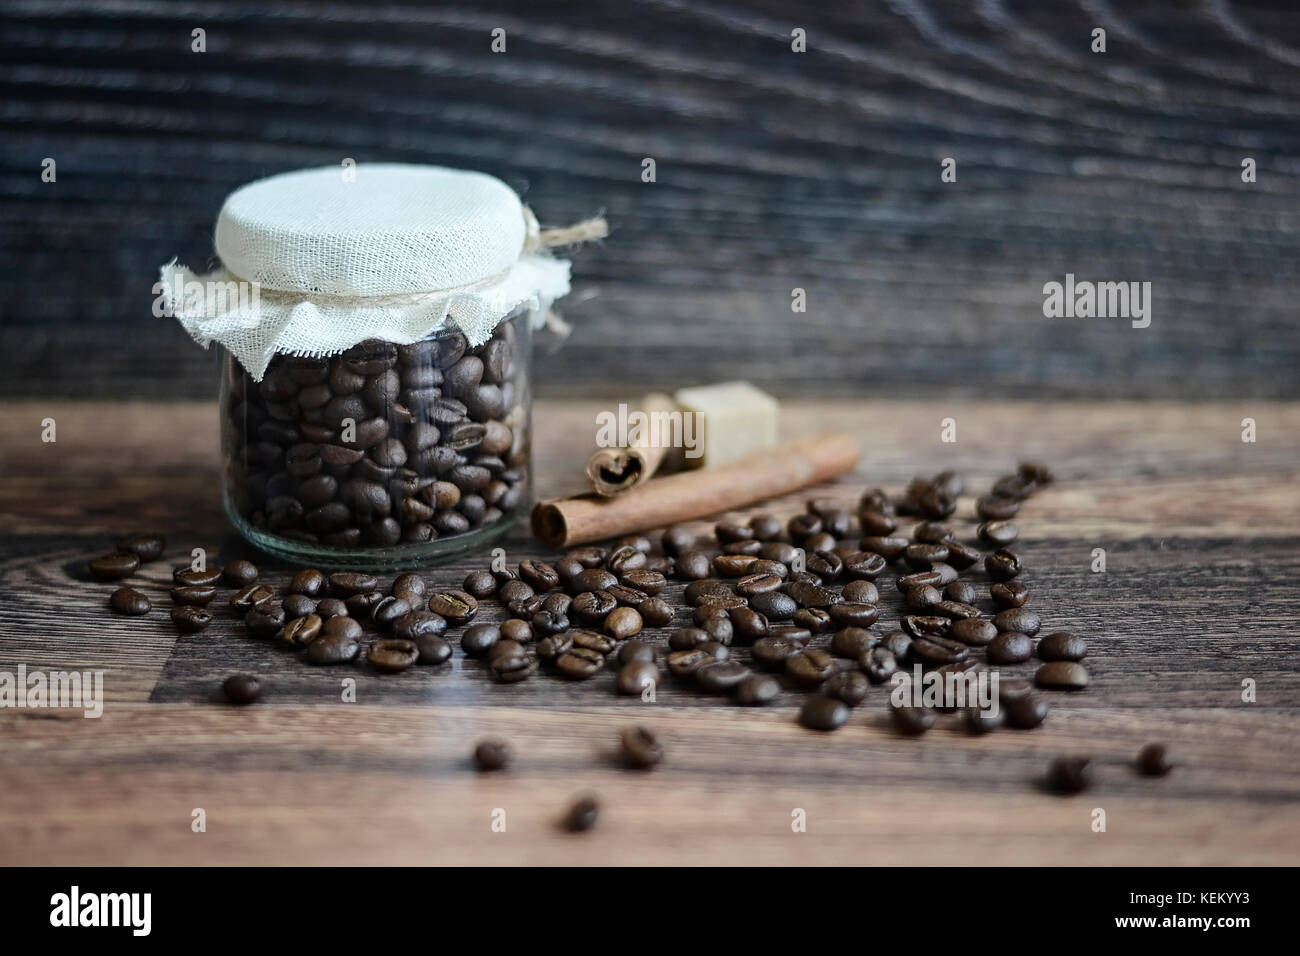 Coffee beans on a wooden table - Stock Image